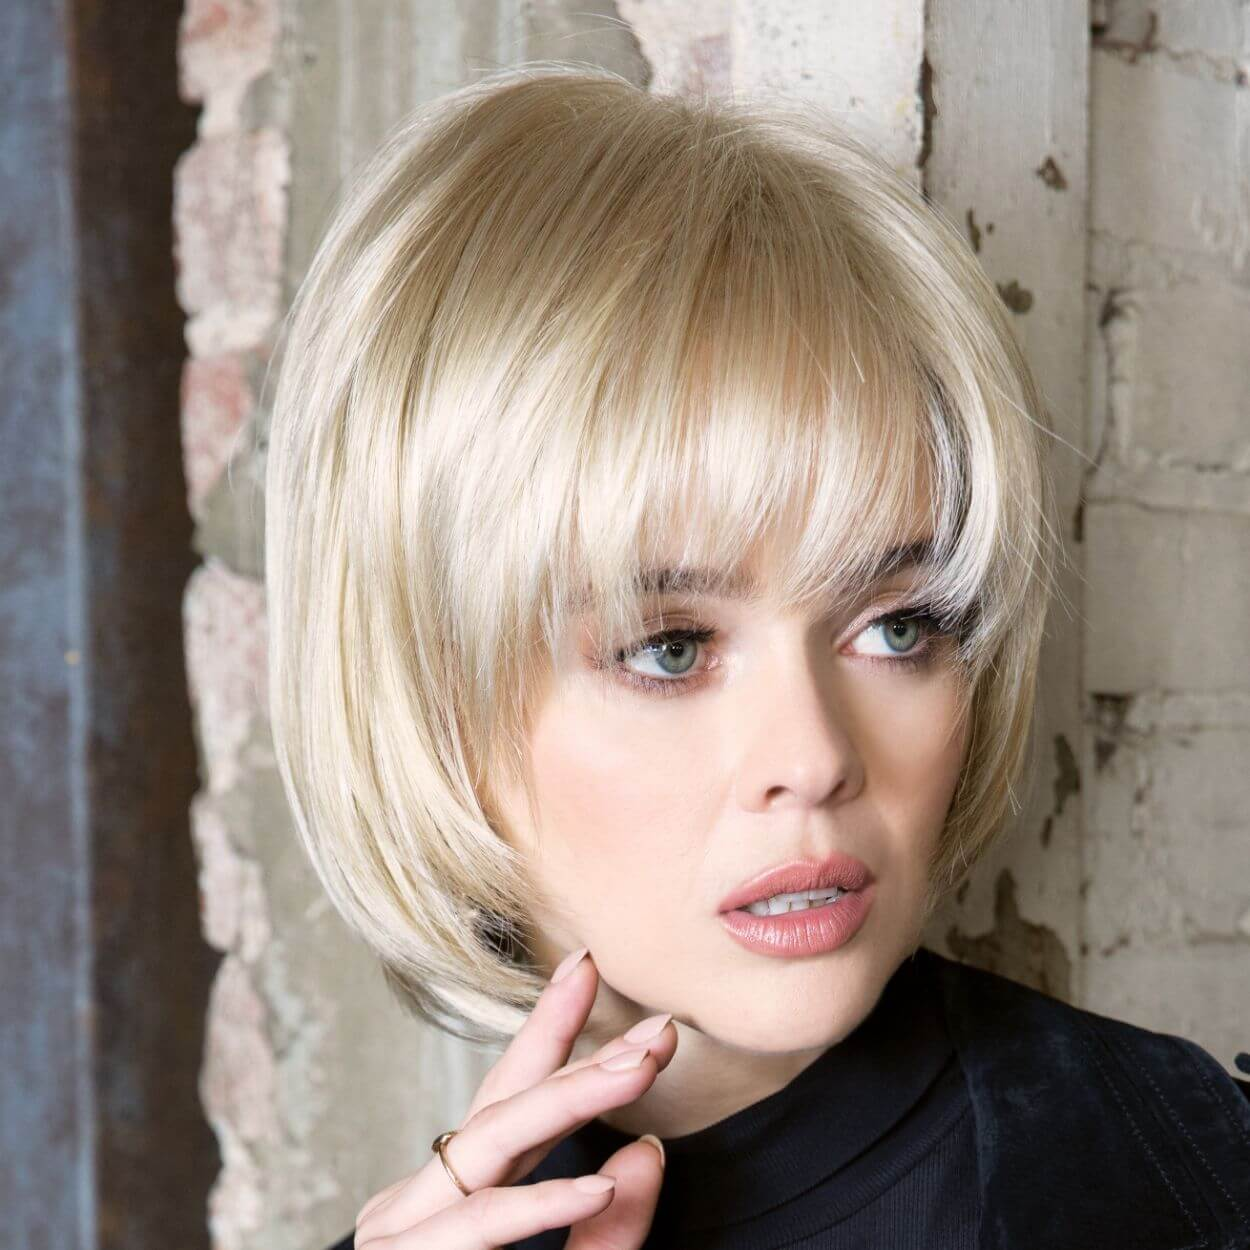 Shannon by Rene of Paris in Creamy Blonde Image 2